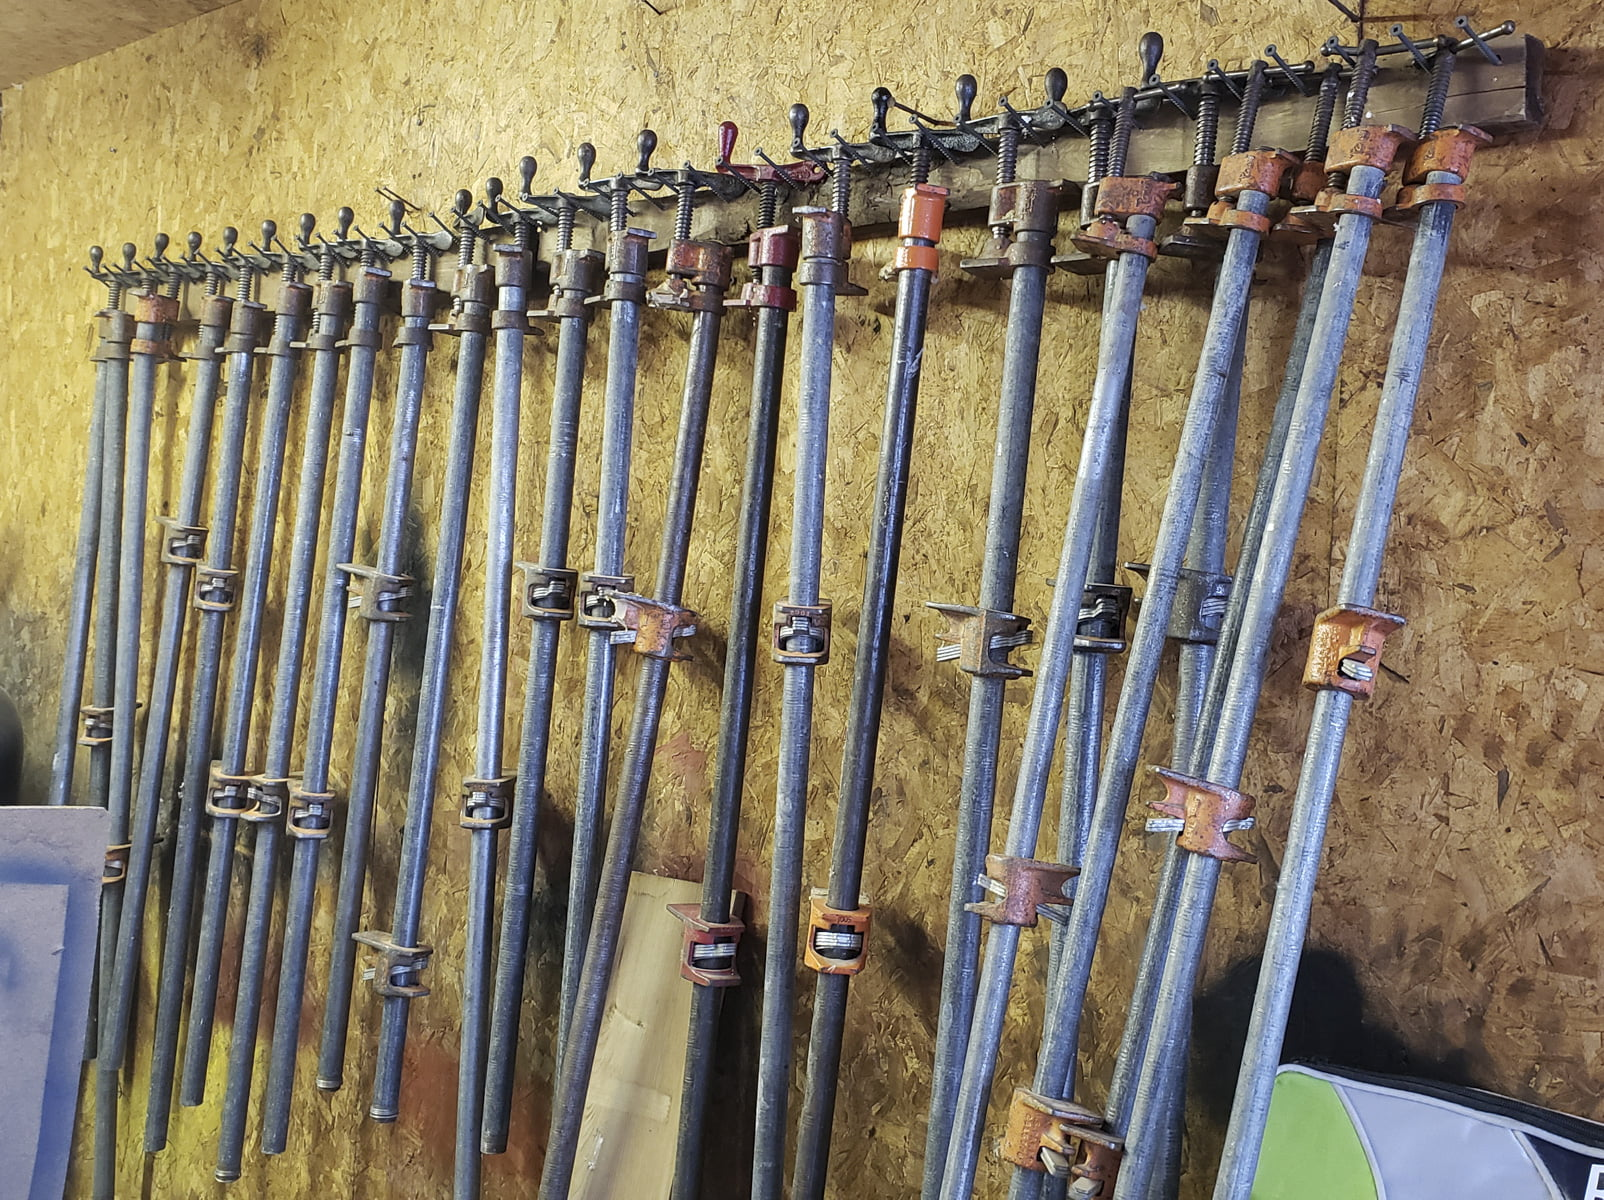 Pipe clamps line the wall of a workshop.